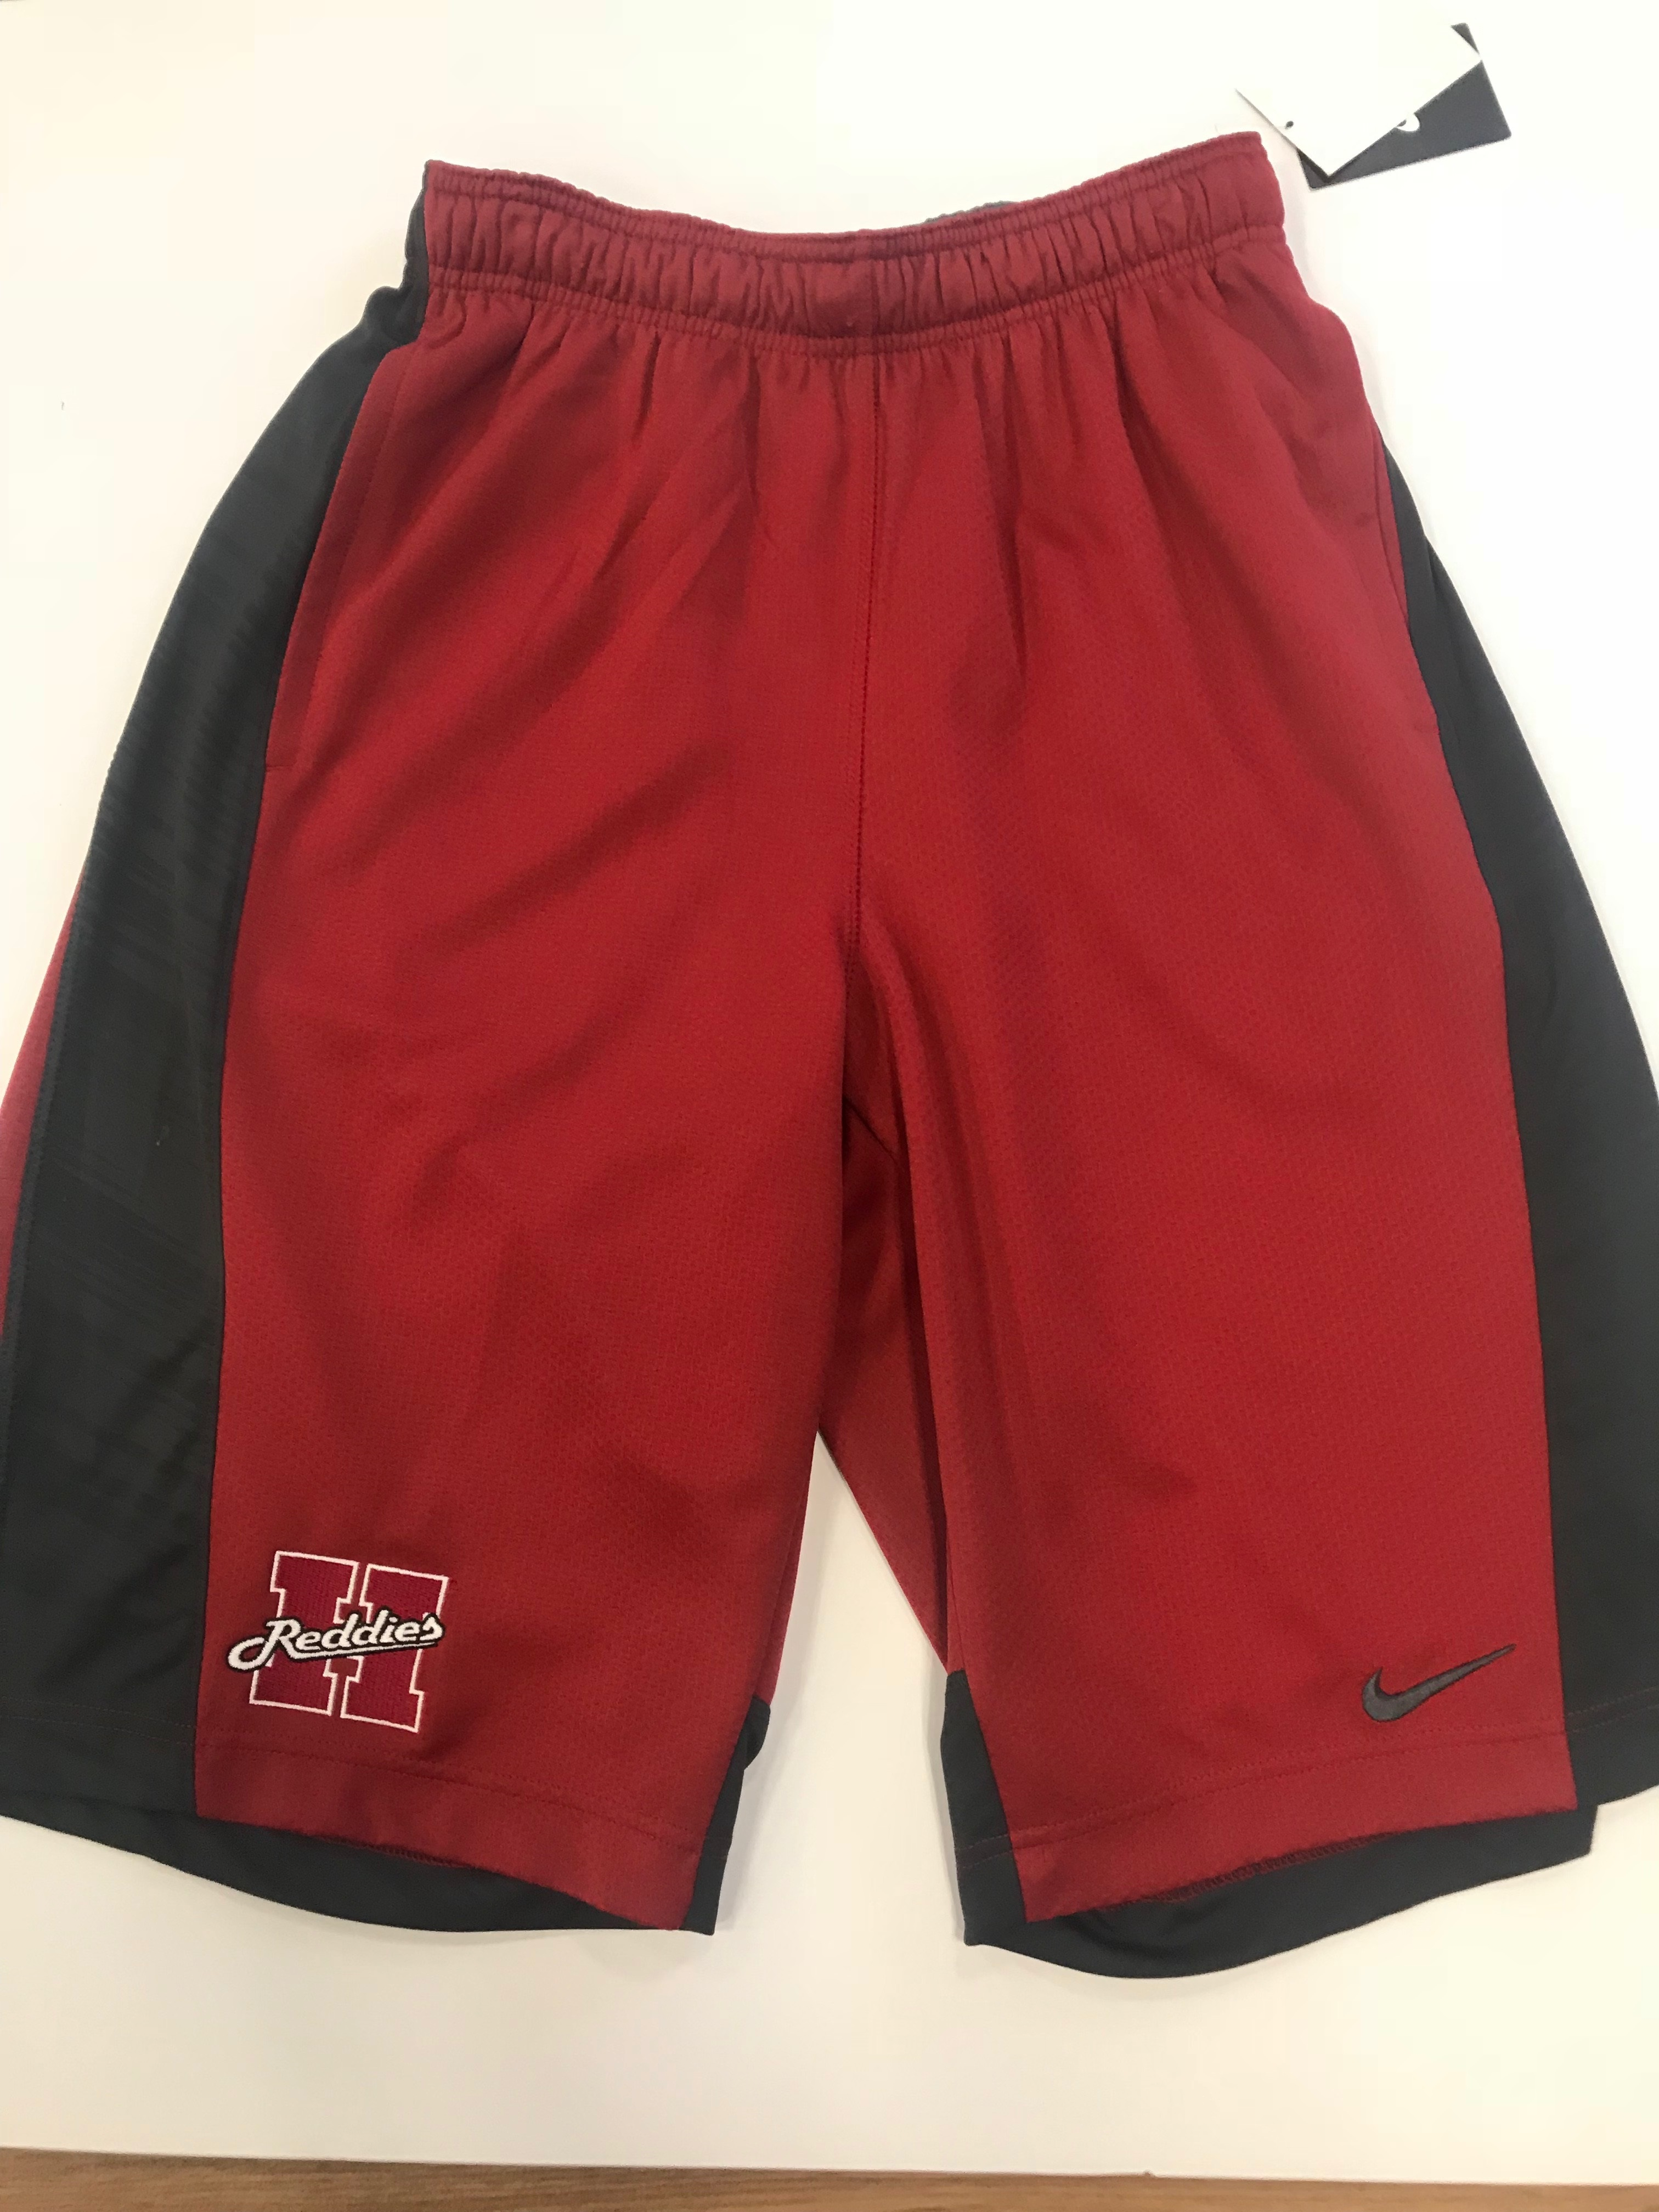 REDDIES RED AND GRAY MENS SHORTS